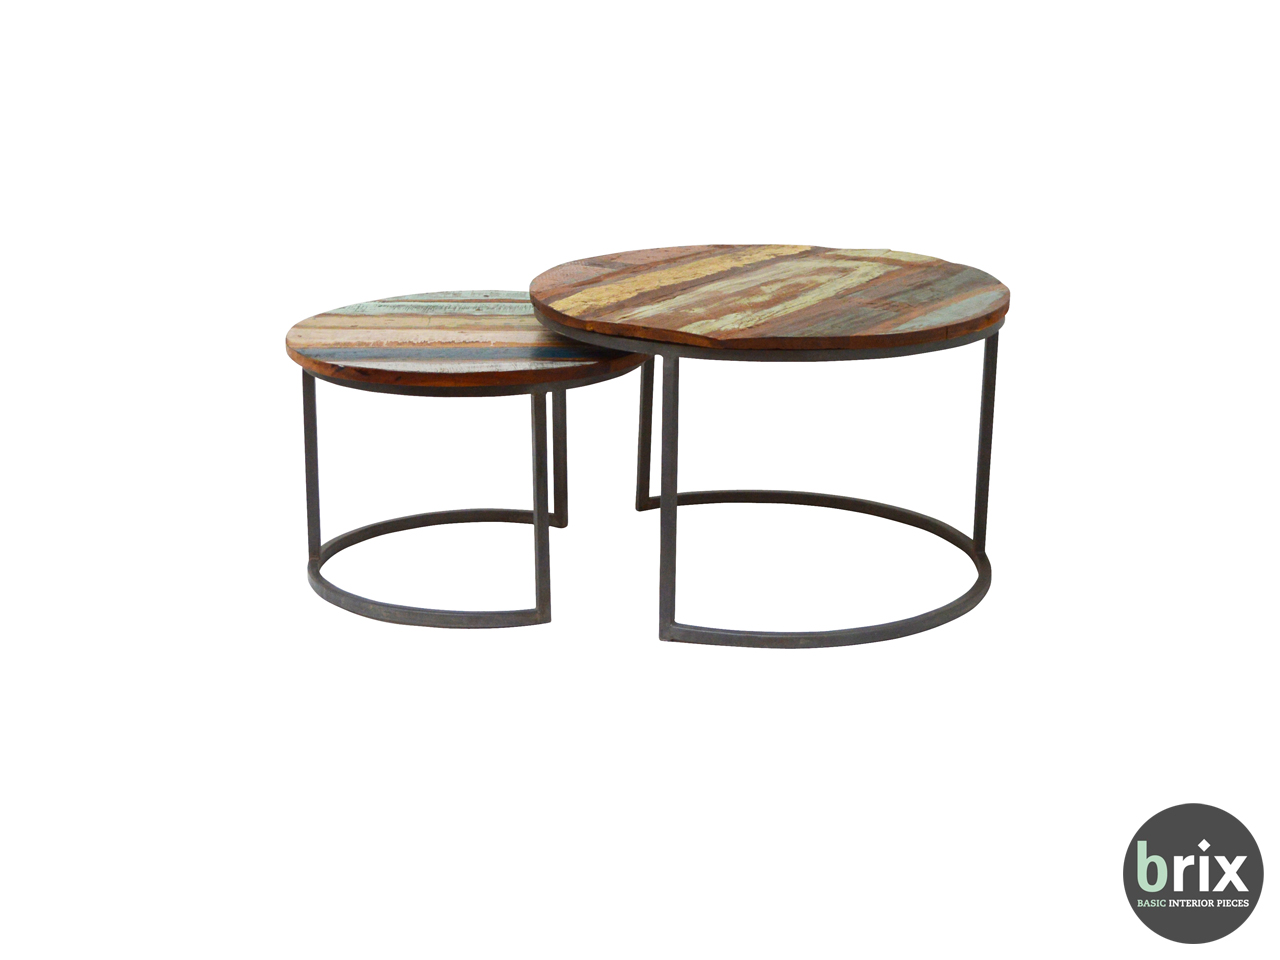 11503 Salontafel Jimmi (set of 2) Steel and mango wood